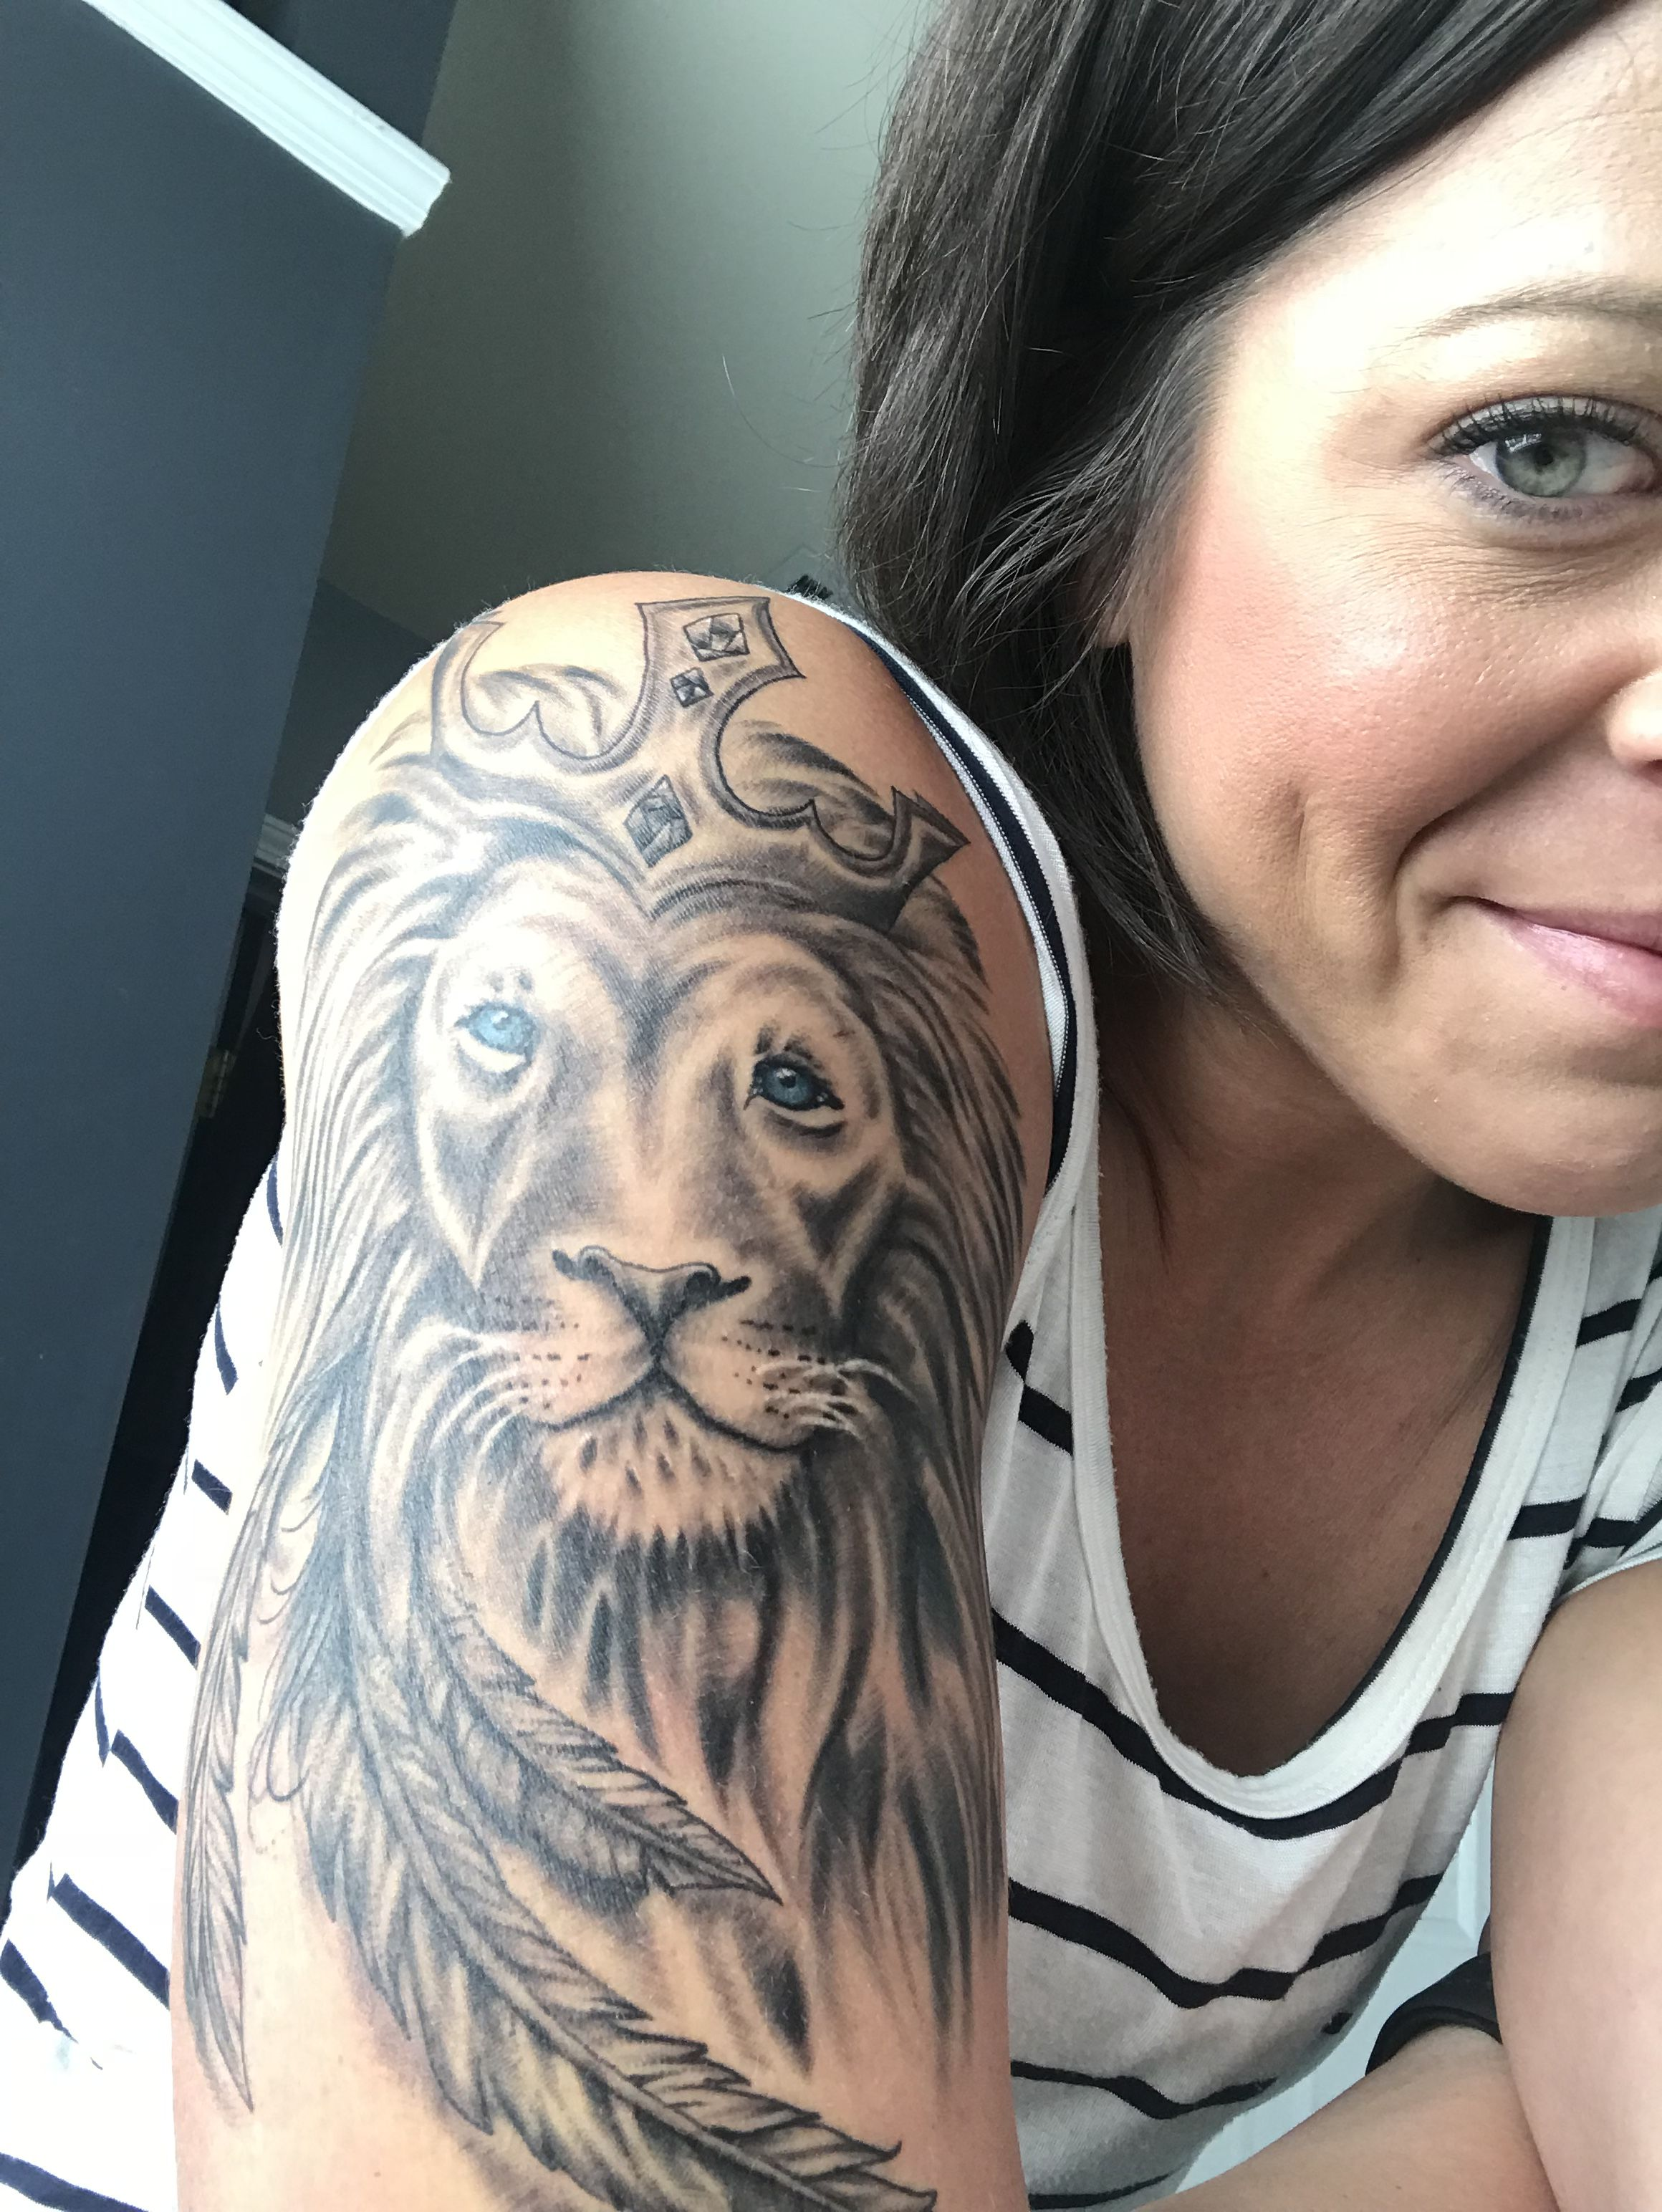 Lion Of Judah Tattoo Our God Is A Lion The Lion Of Judah Che S Roaring With Power And Fighting Our Battles Who Can Stop Be Still Tattoo Tattoos Lion Of Judah